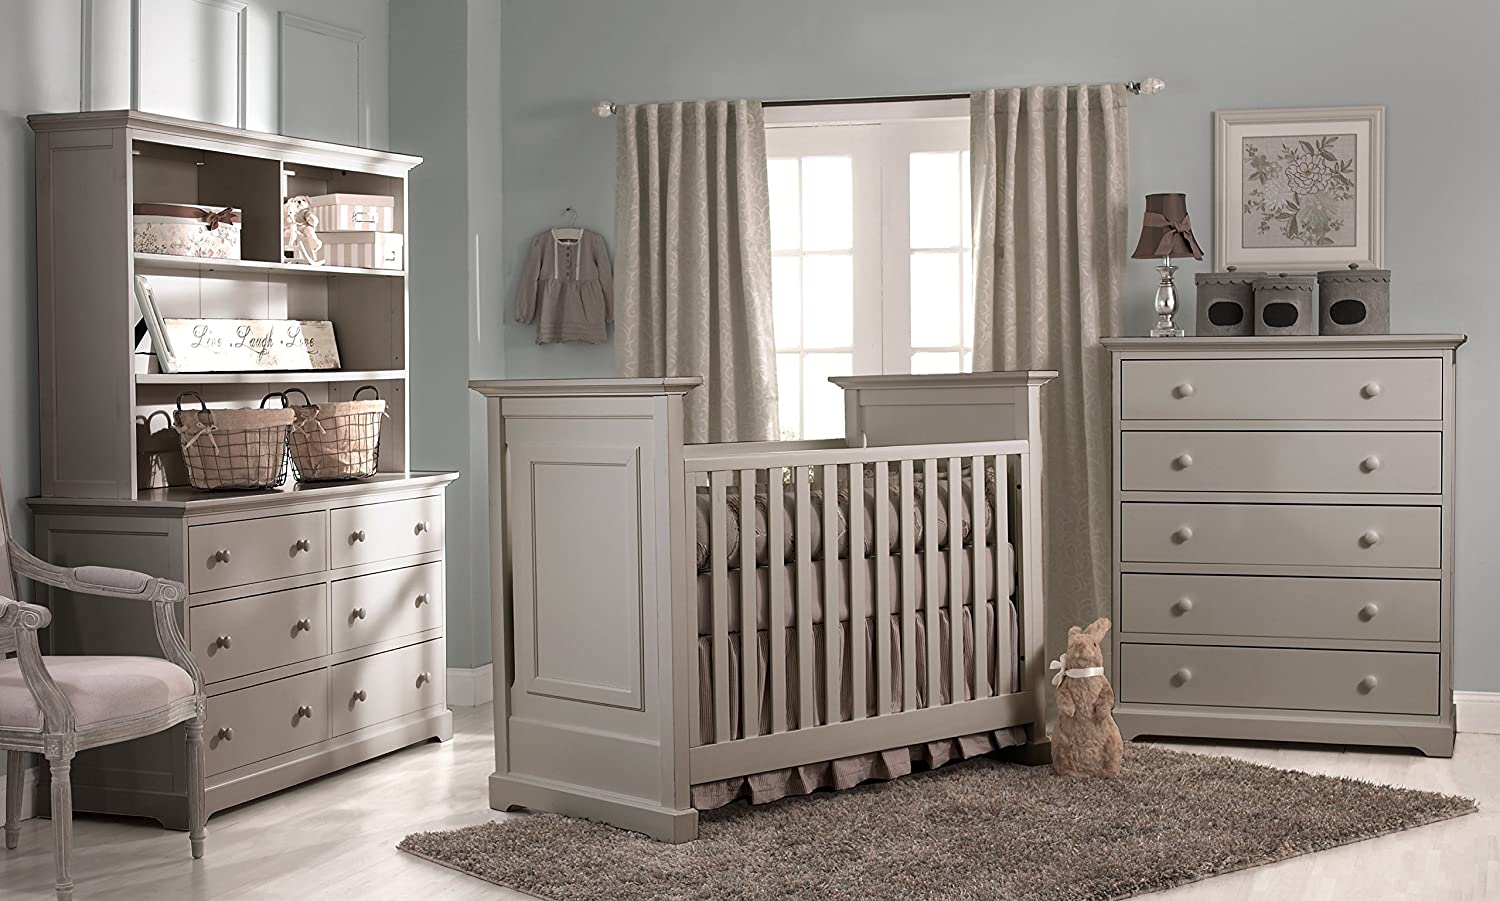 decoration picture bedding green brown crib gorgeous cribs wood oak room nursery using dark bed natural with extraordinary rectangular sage organic light of white baby and valance including